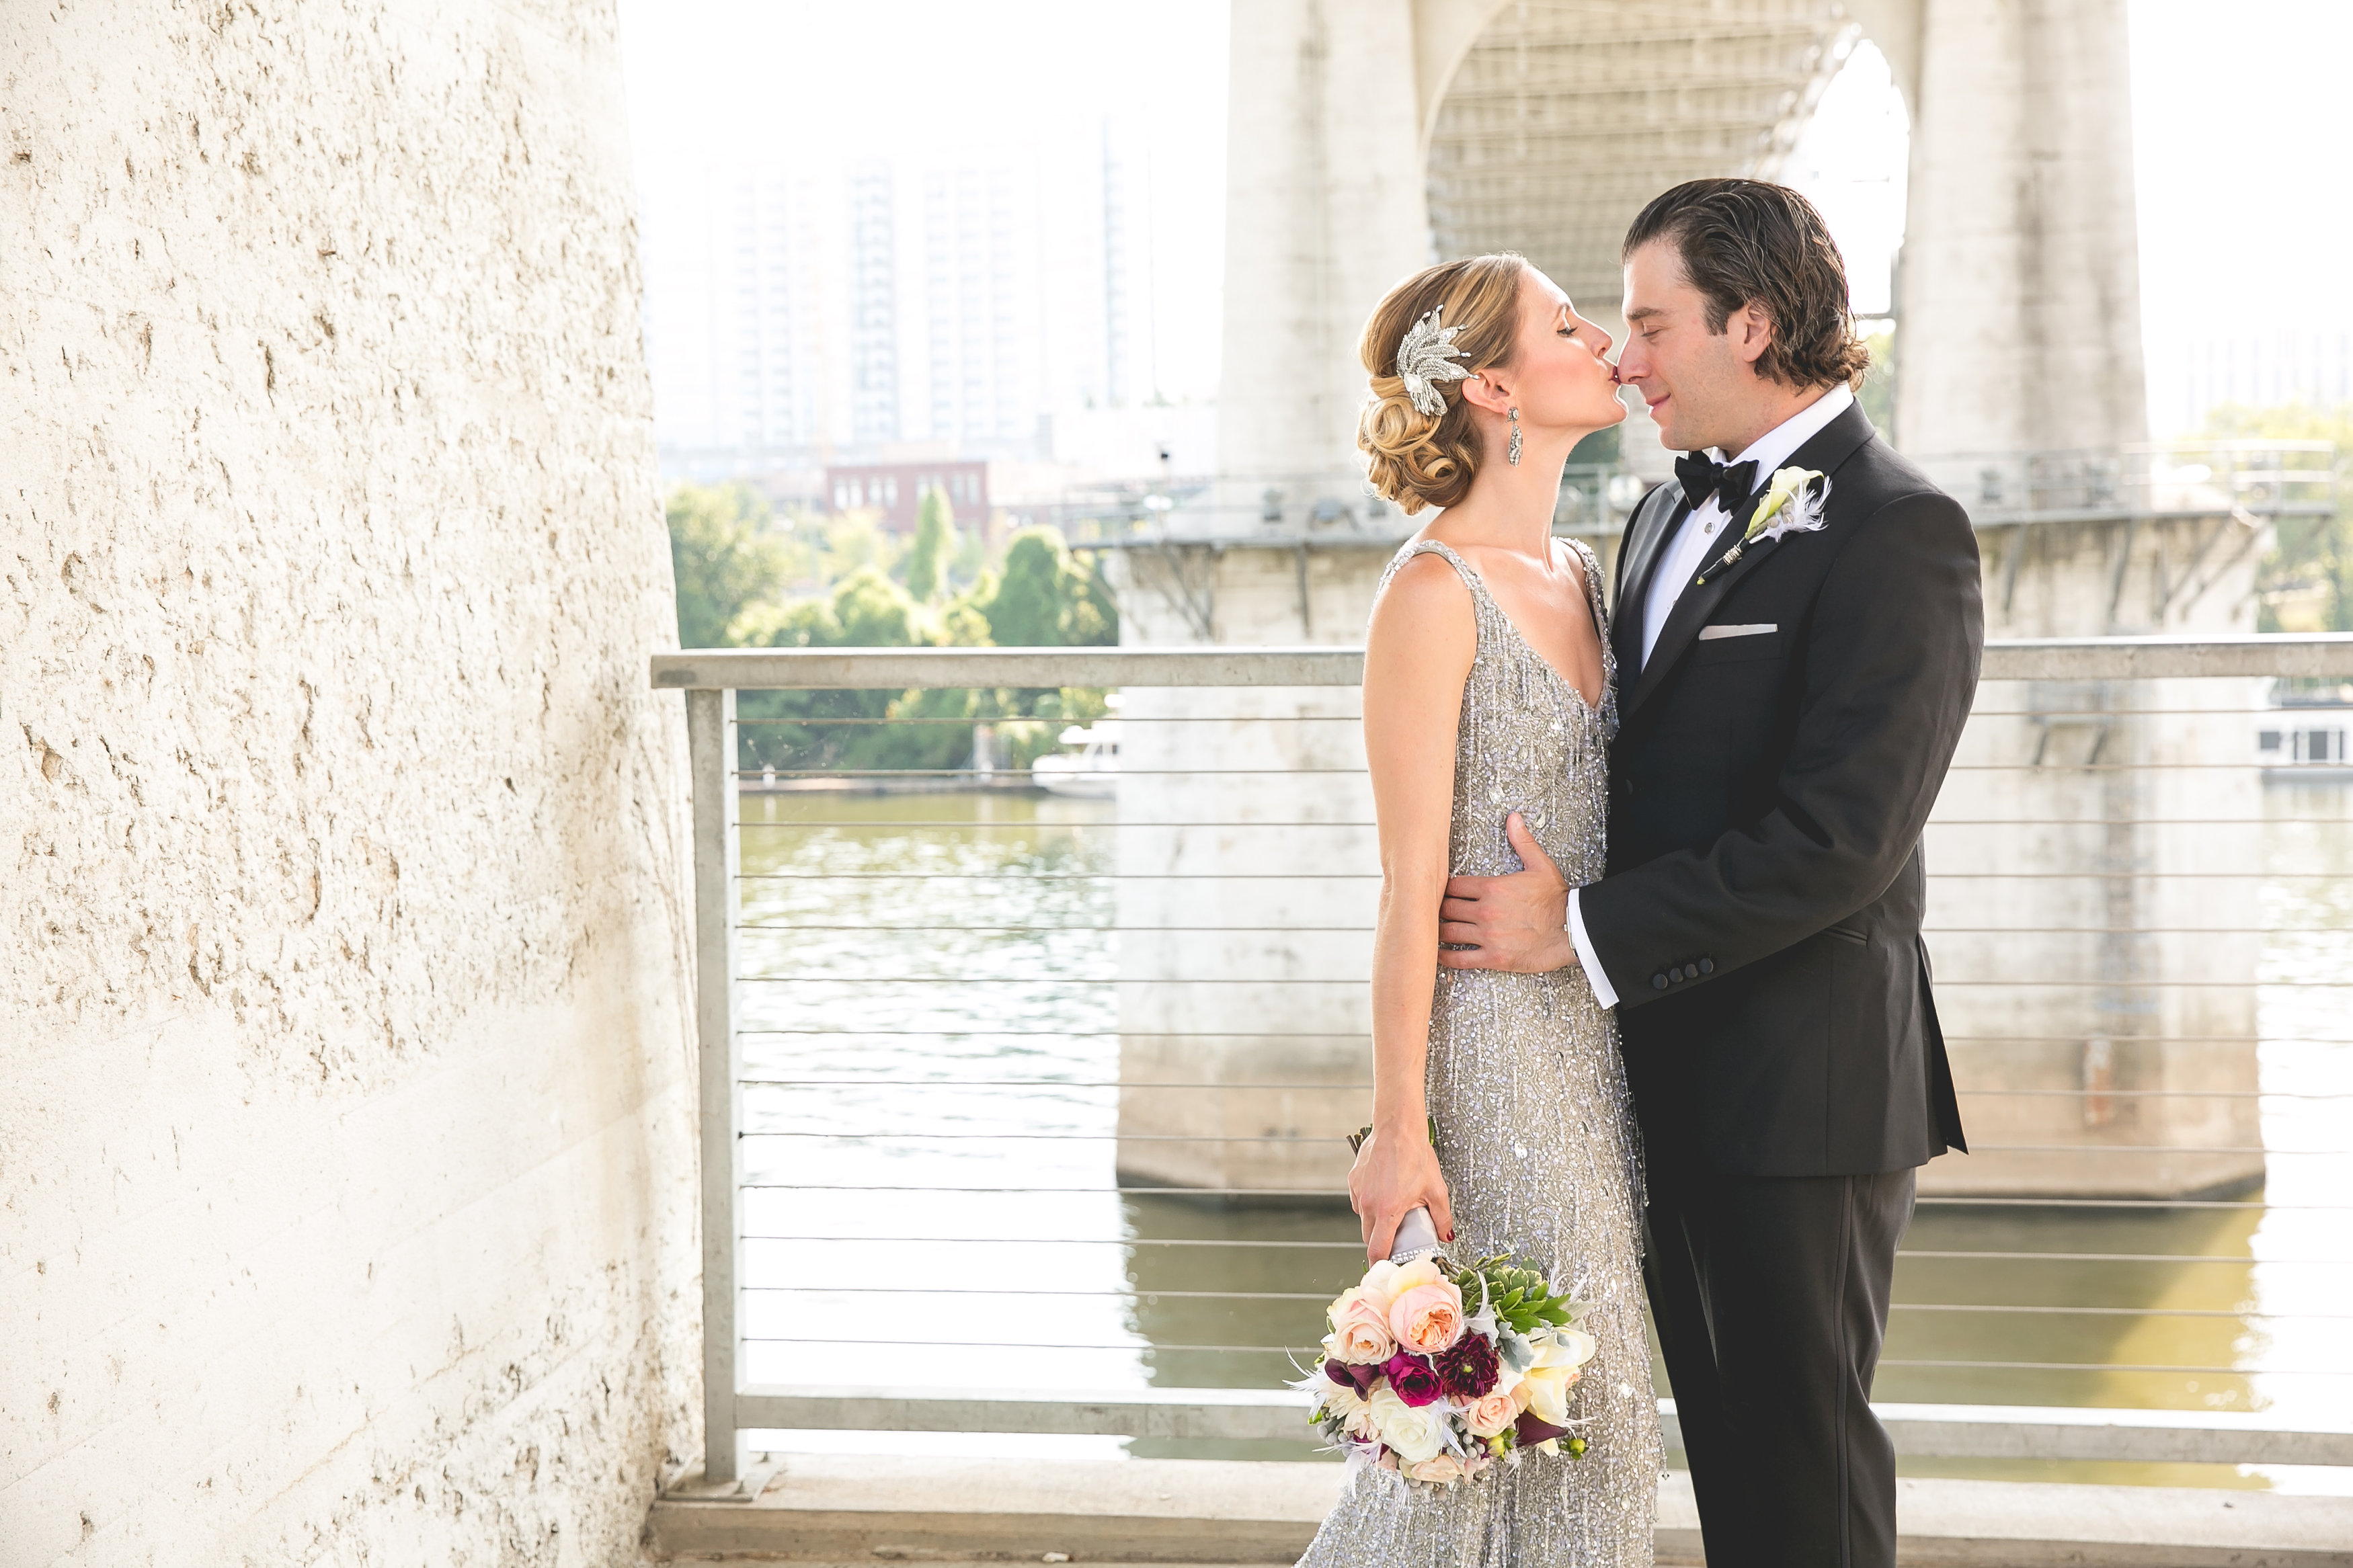 Best Sparkling Silver Jewish Wedding Nashville The Big Fat With Dress